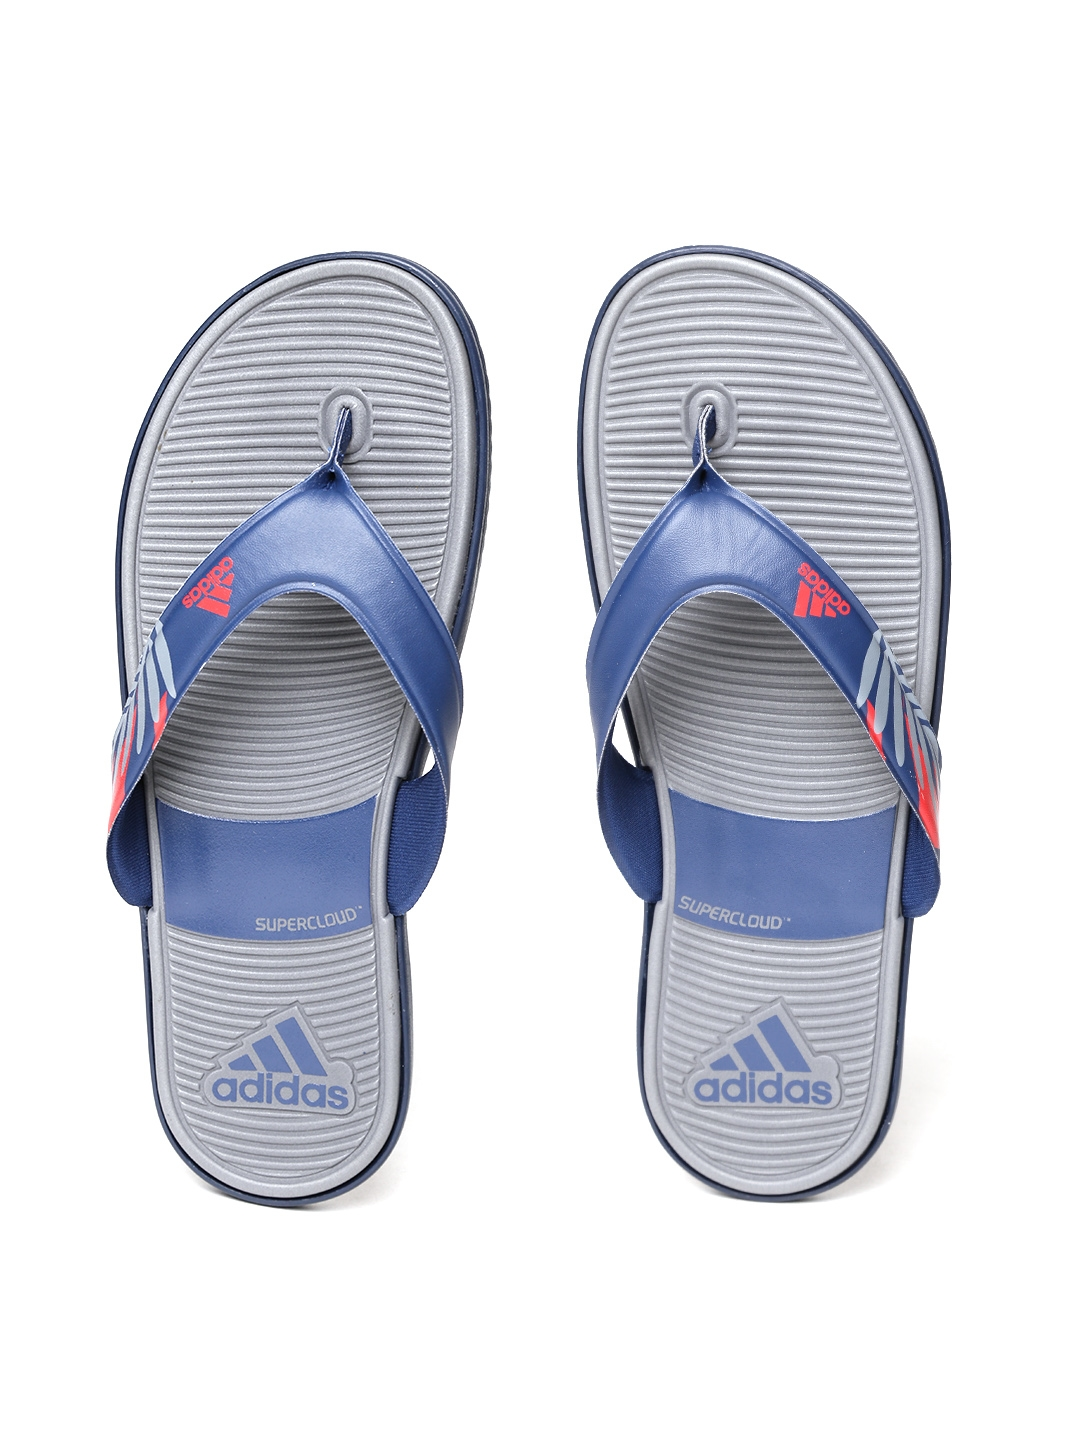 b3317e38053 Buy ADIDAS Men Navy   Grey SC Beach Printed Thong Flip Flops - Flip ...